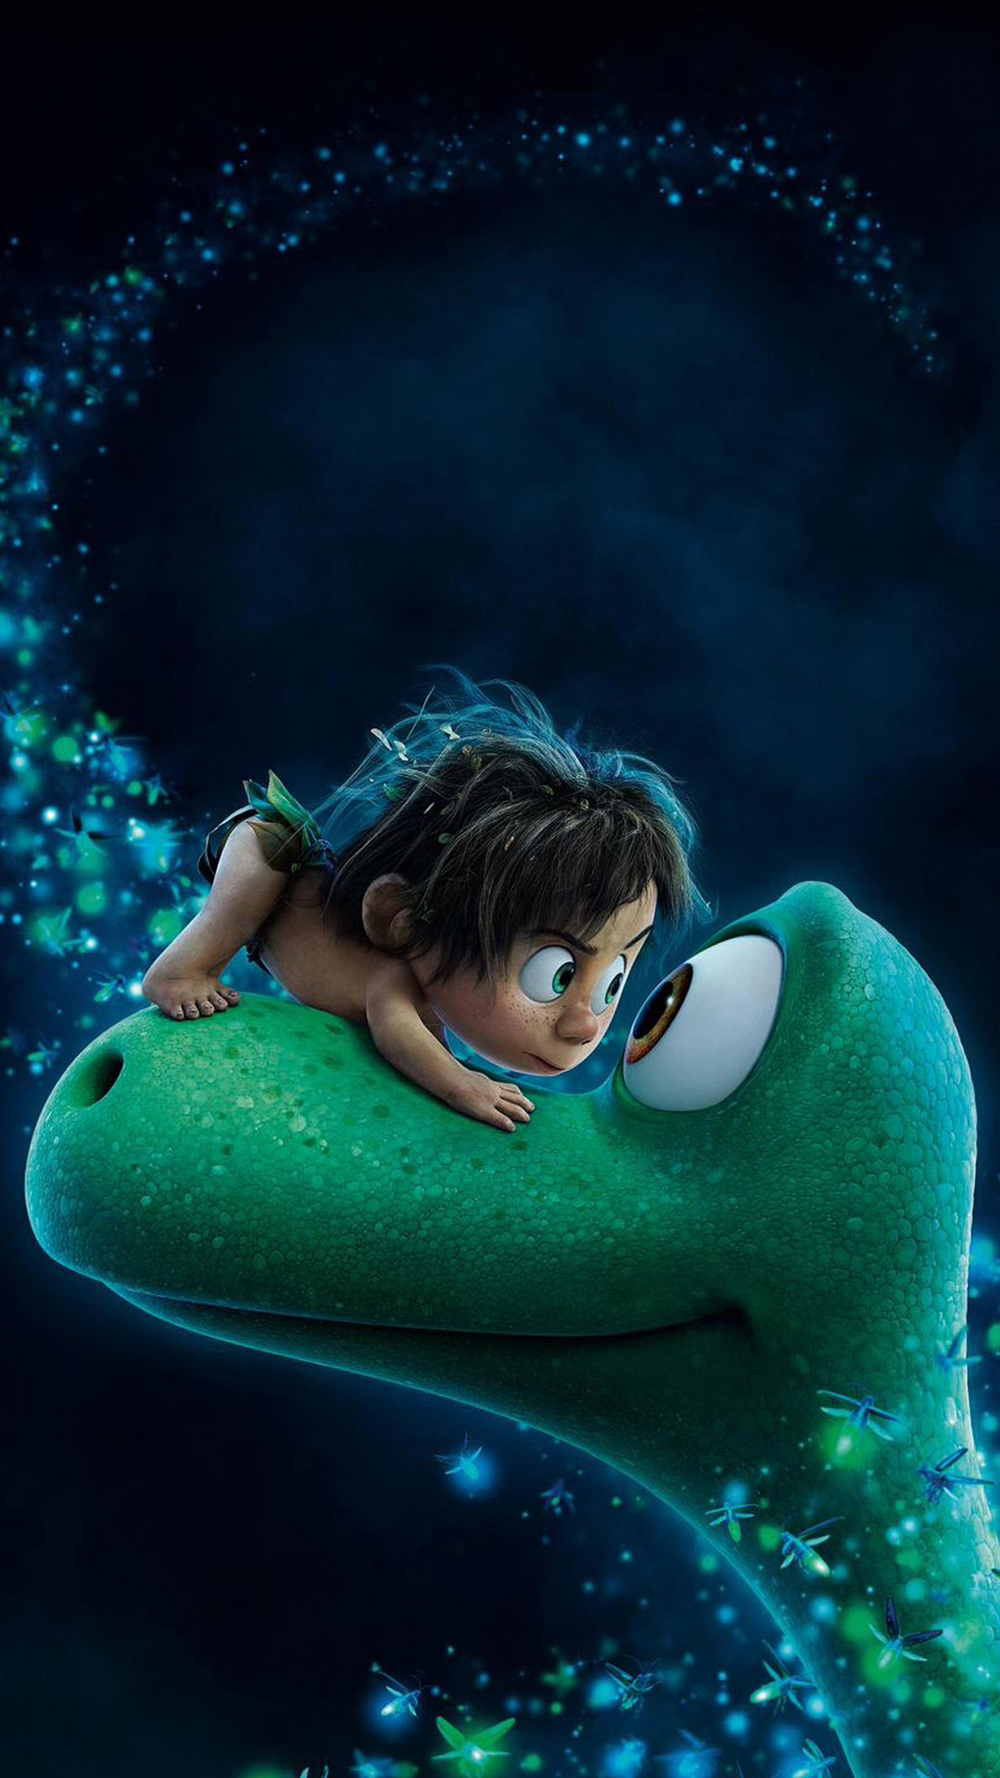 The Good Dinosaur: Downloadable Wallpaper for iOS & Android Phones For The Love of Pixar